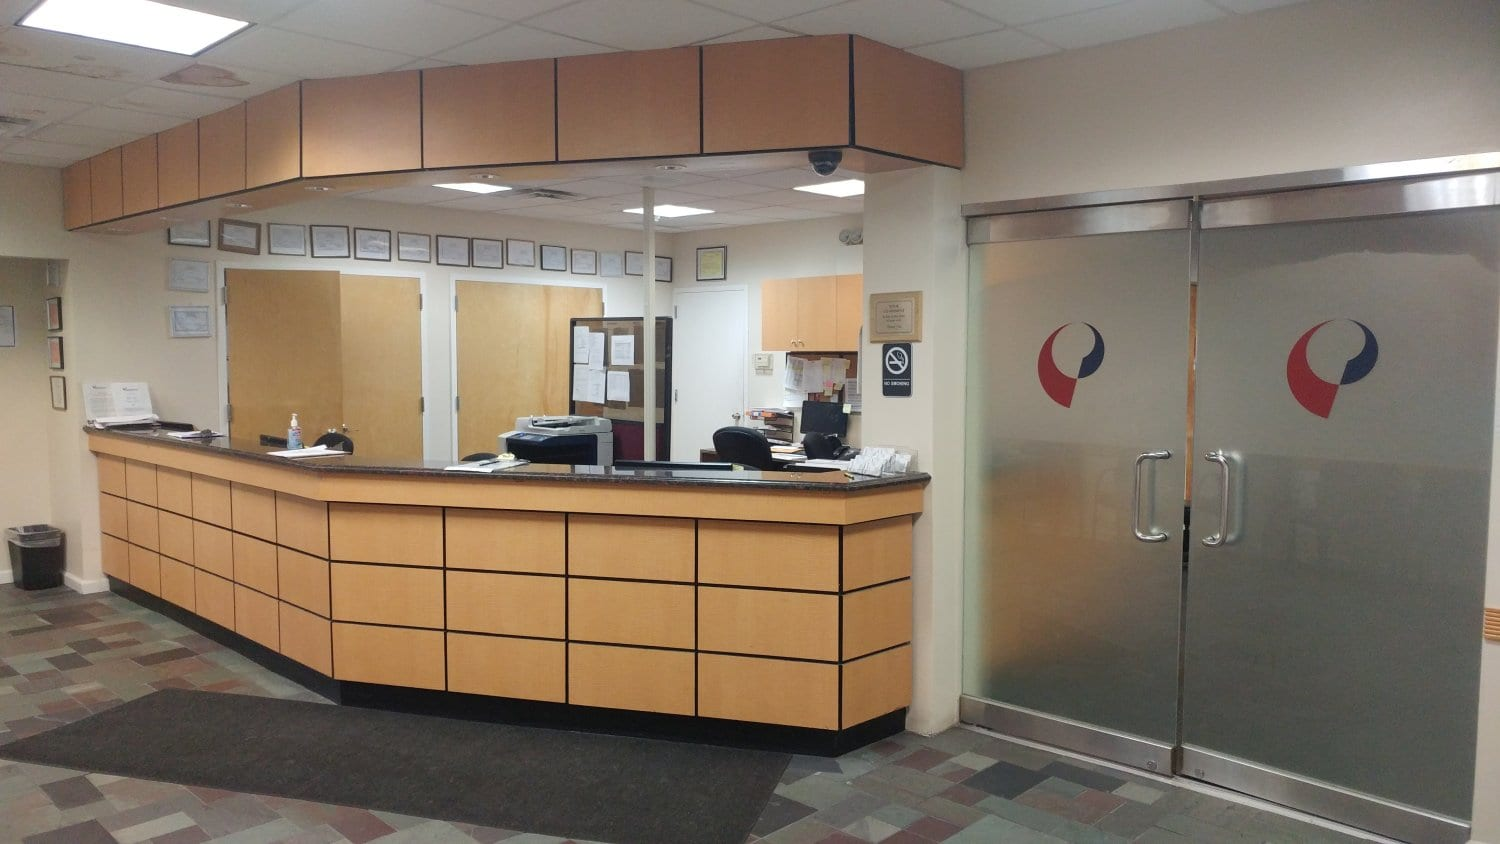 An image of the reception desk at our physical therapy clinic in Bayside Whitestone, New York.